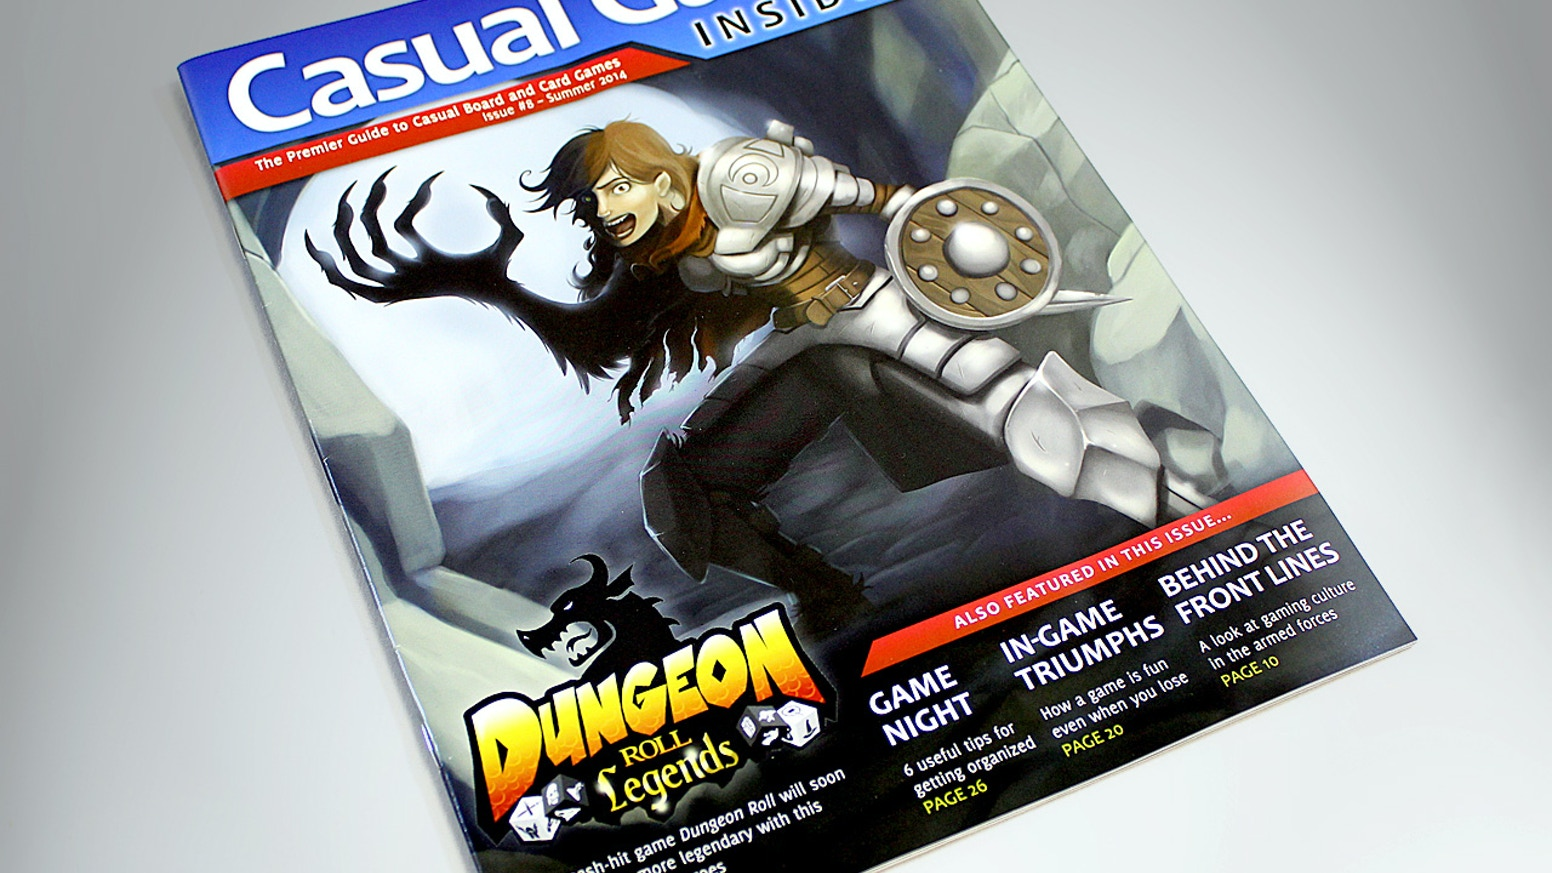 An awesome tabletop gaming magazine that reaches 2,100 game stores and now mainstream newsstands, thanks to you!